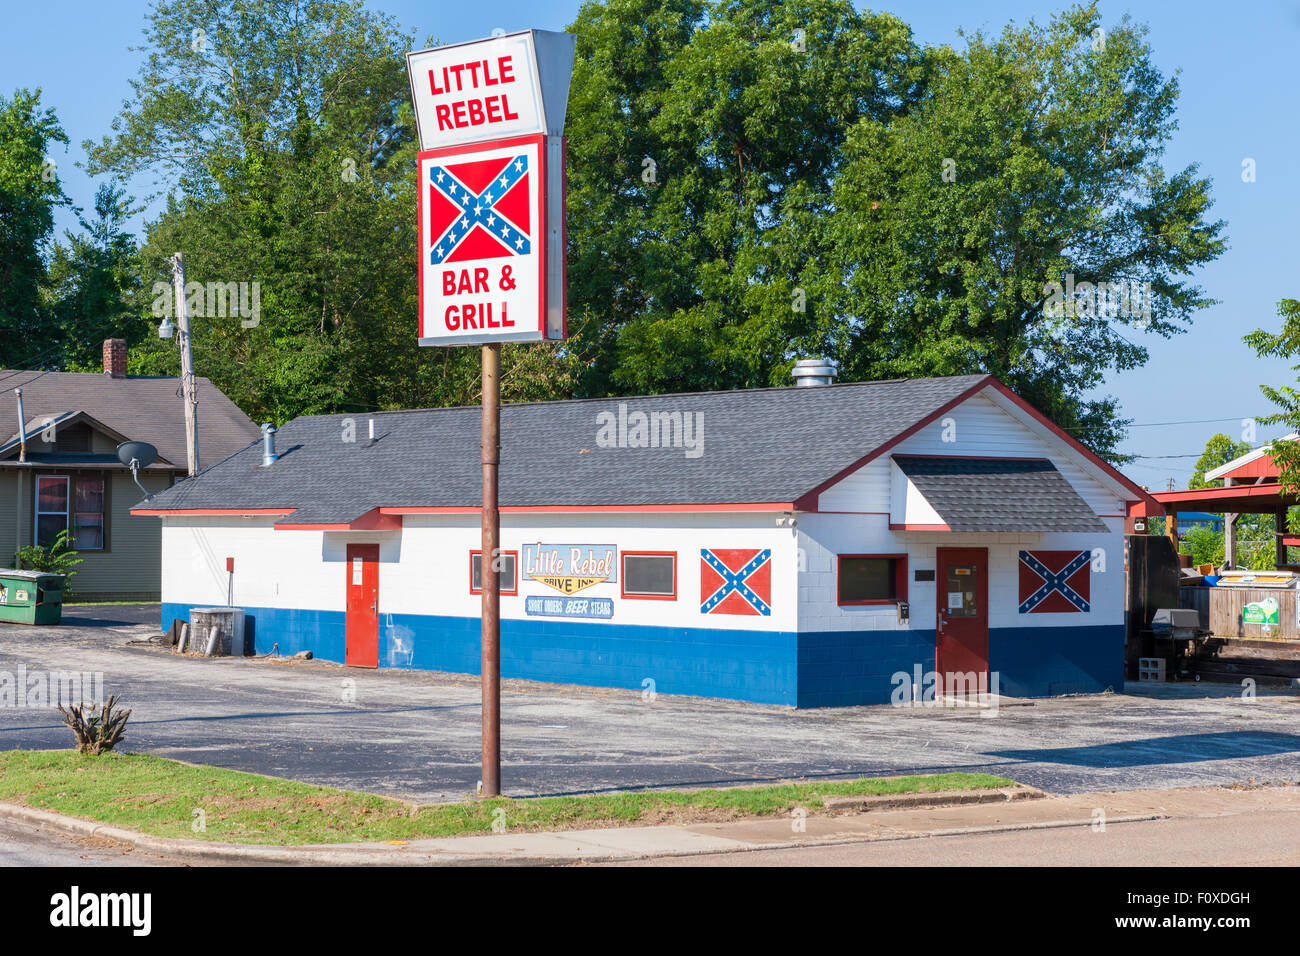 The Little Rebel Bar & Grill in Jackson, Tennessee. - Stock Image